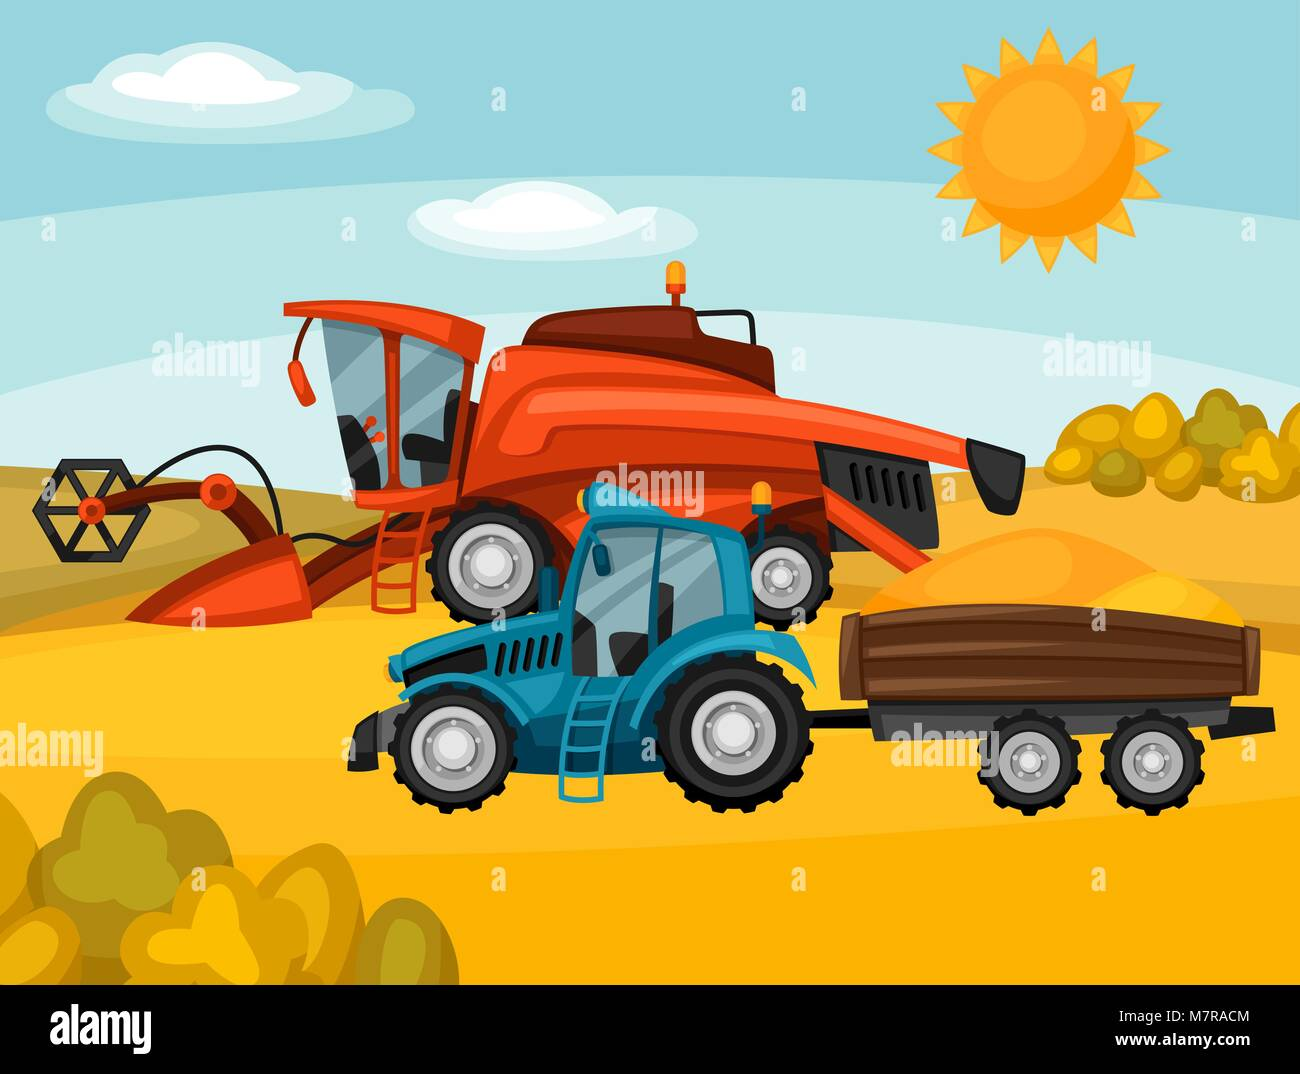 Combine harvester and tractor on wheat field. Agricultural illustration farm rural landscape - Stock Vector